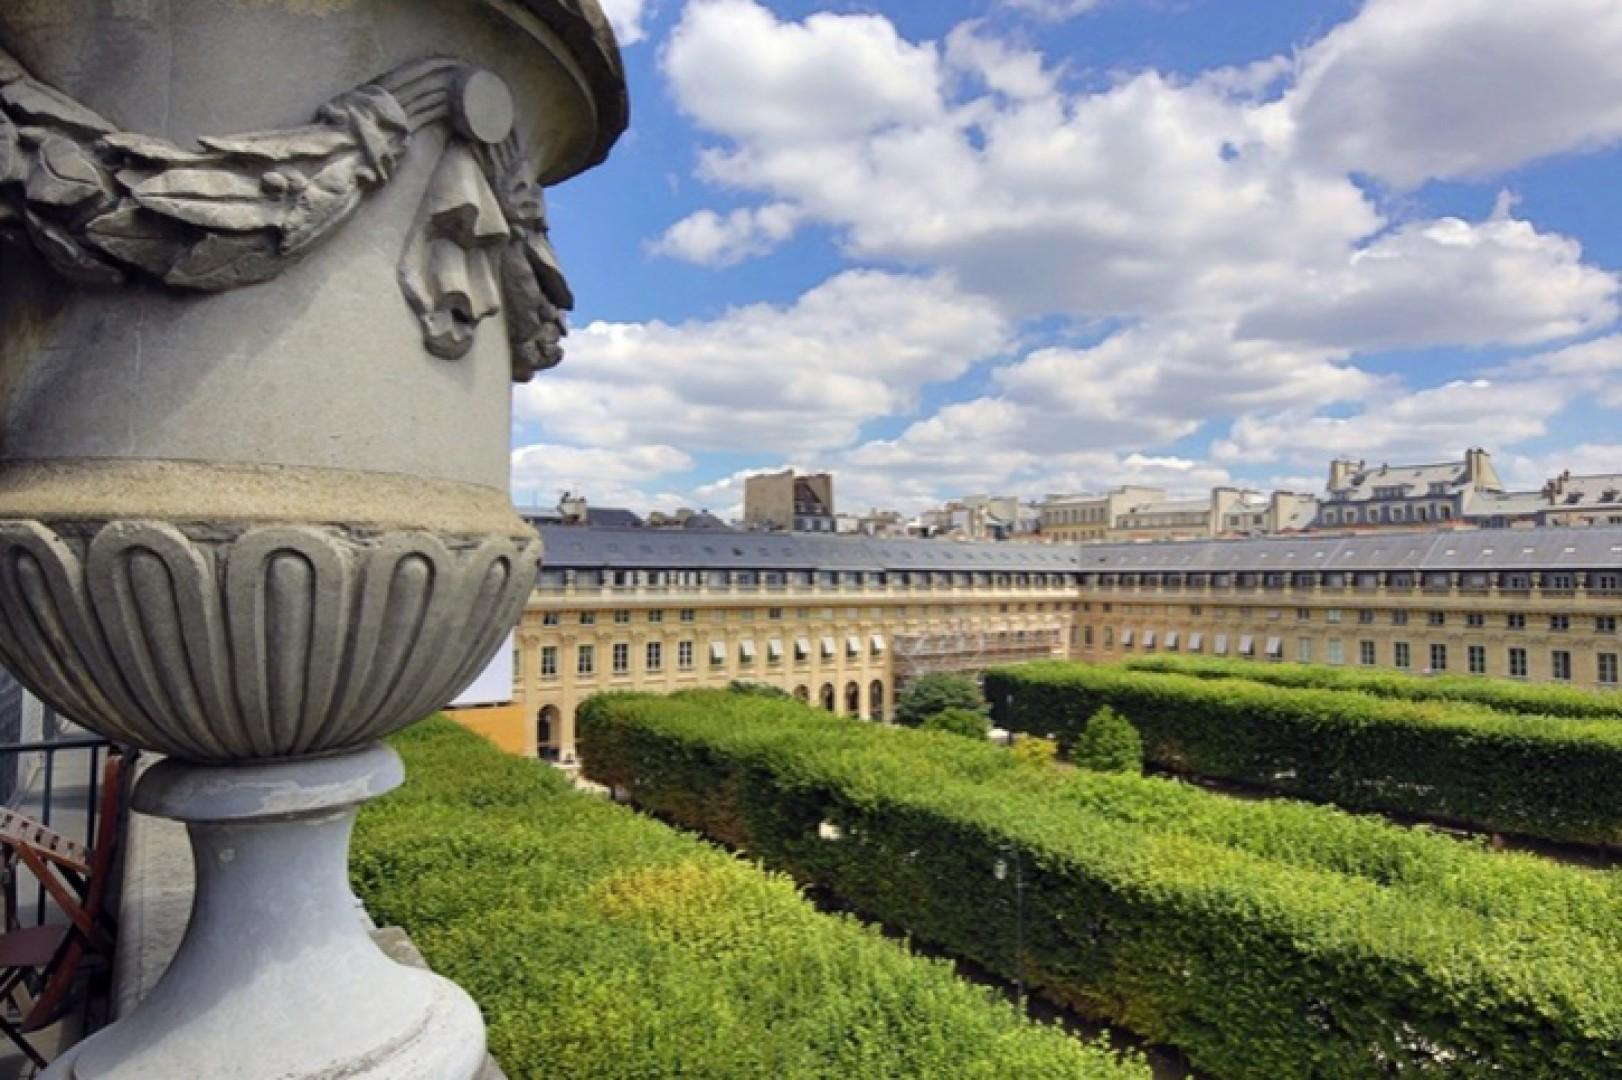 You'll be only a short walk from the Louvre and La Comédie Française!